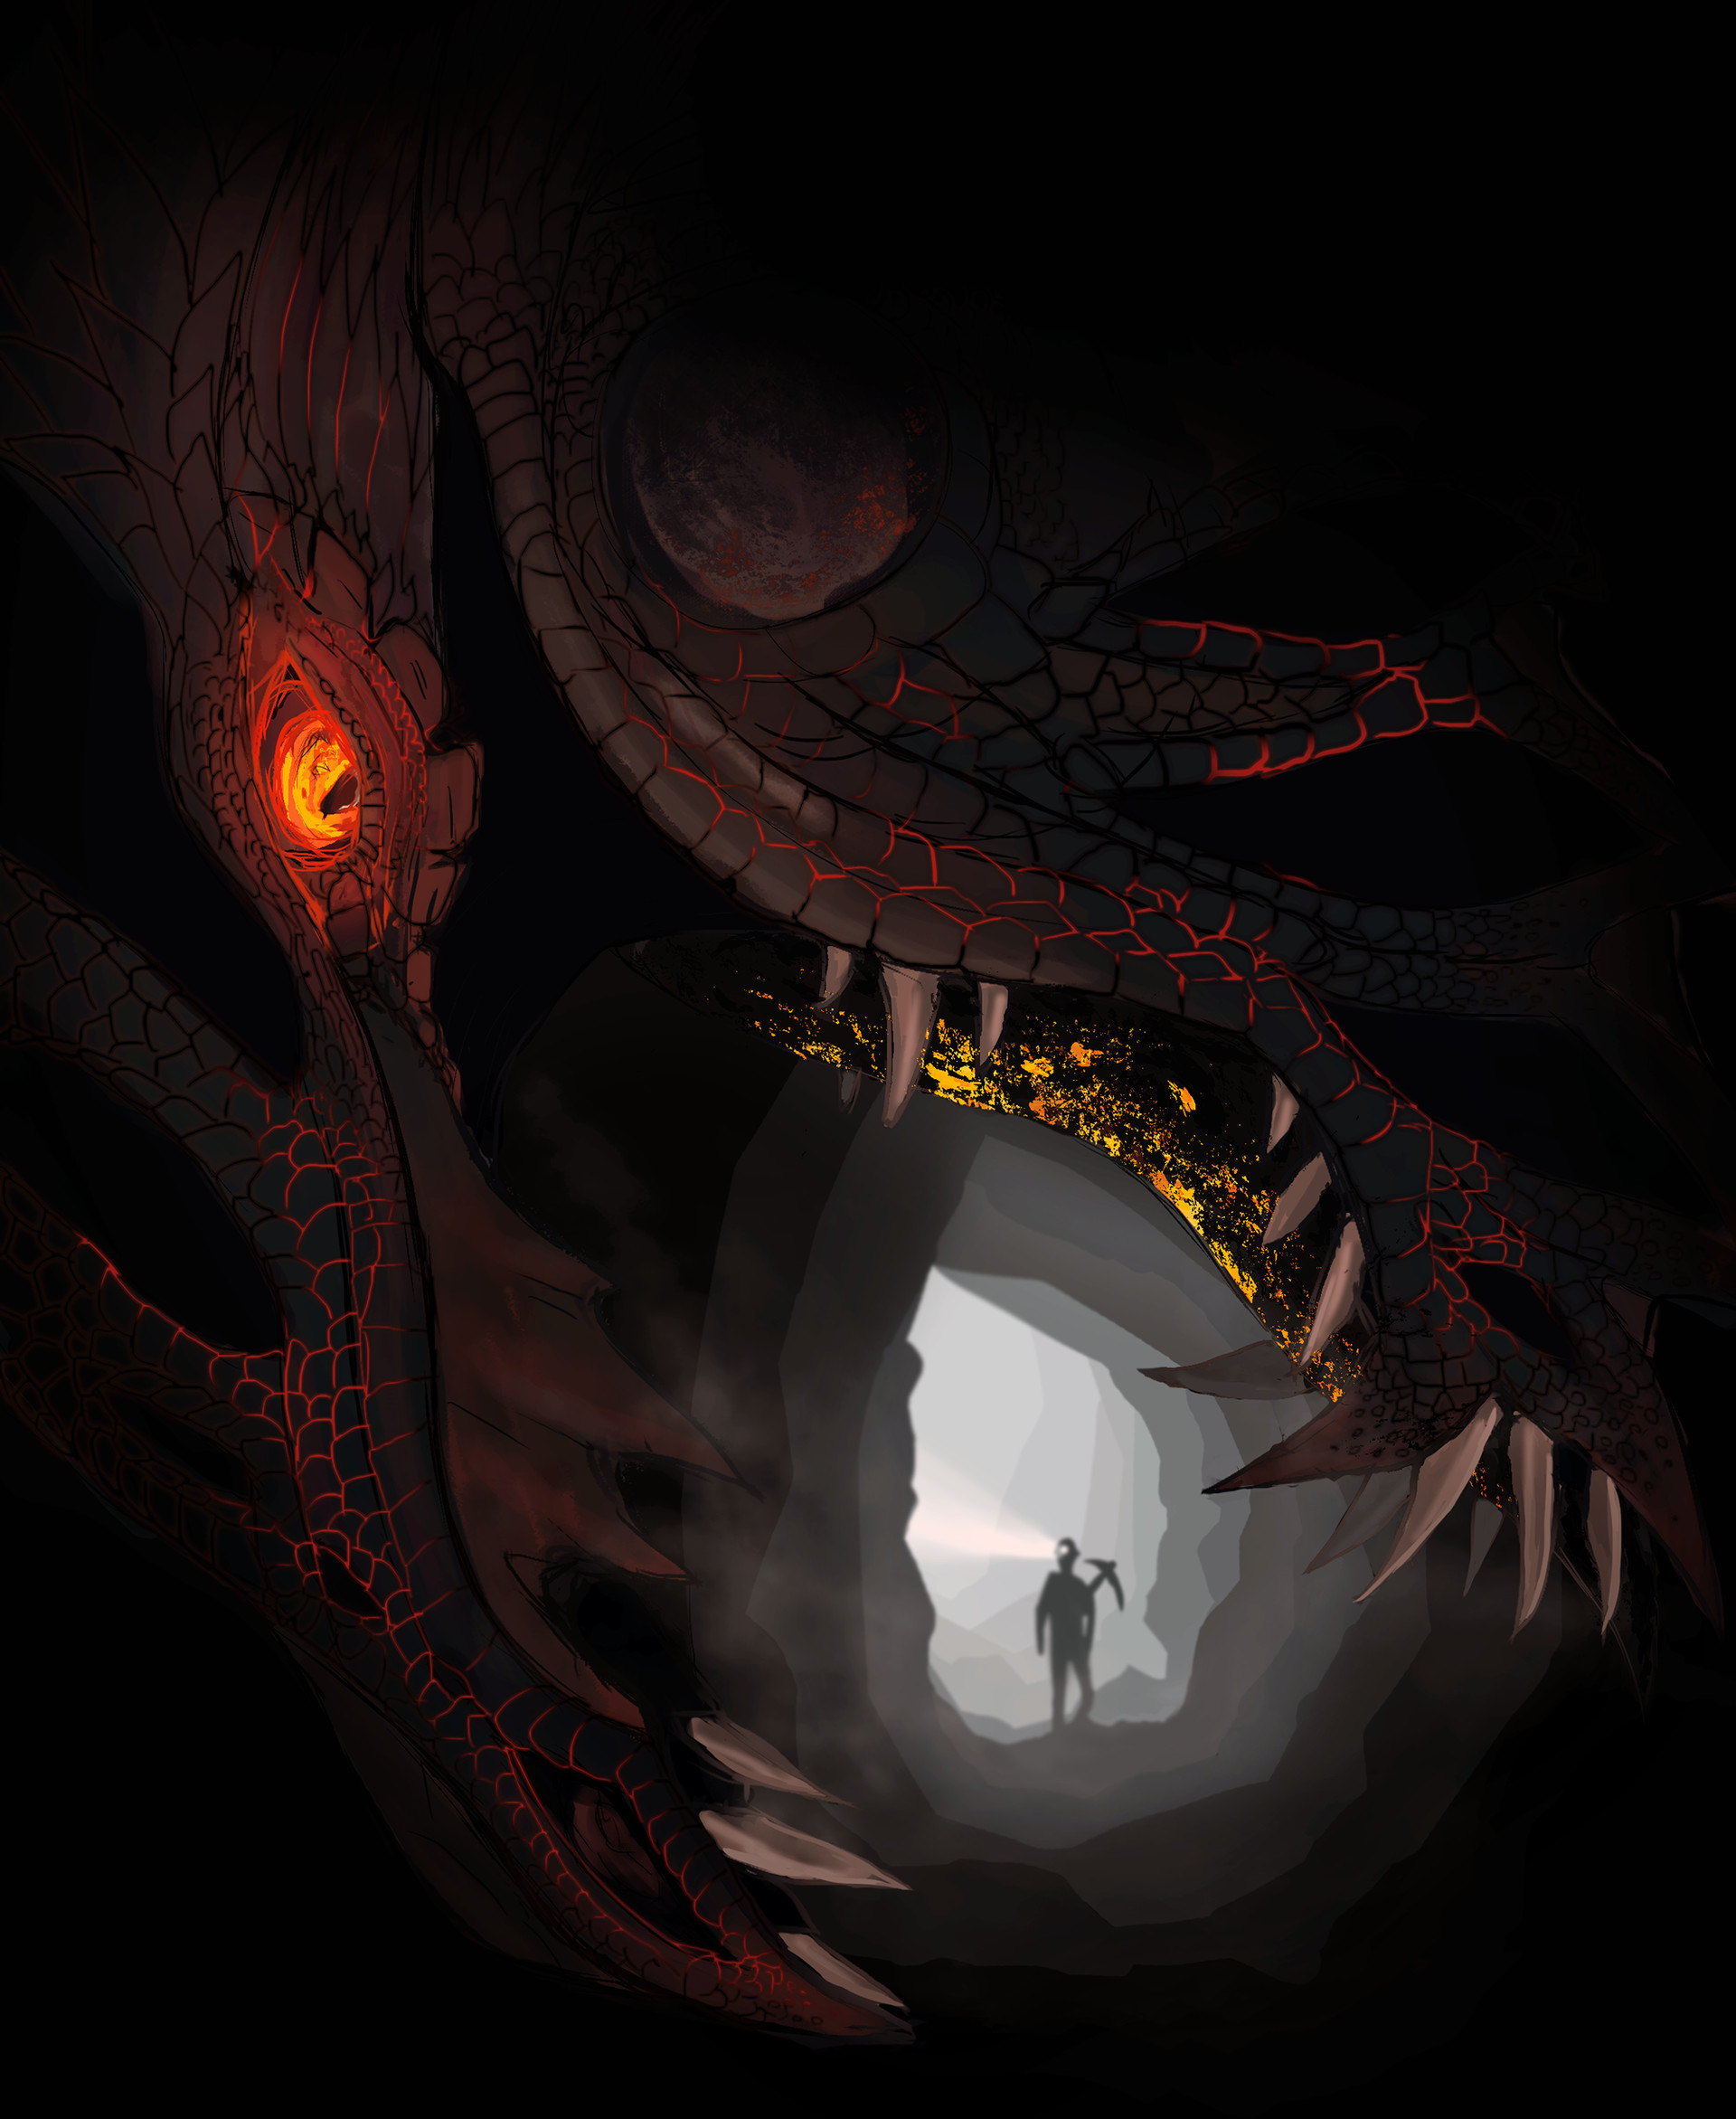 ArtStation - Dungeons and Dragons - Cave Lurker, Julia M  B